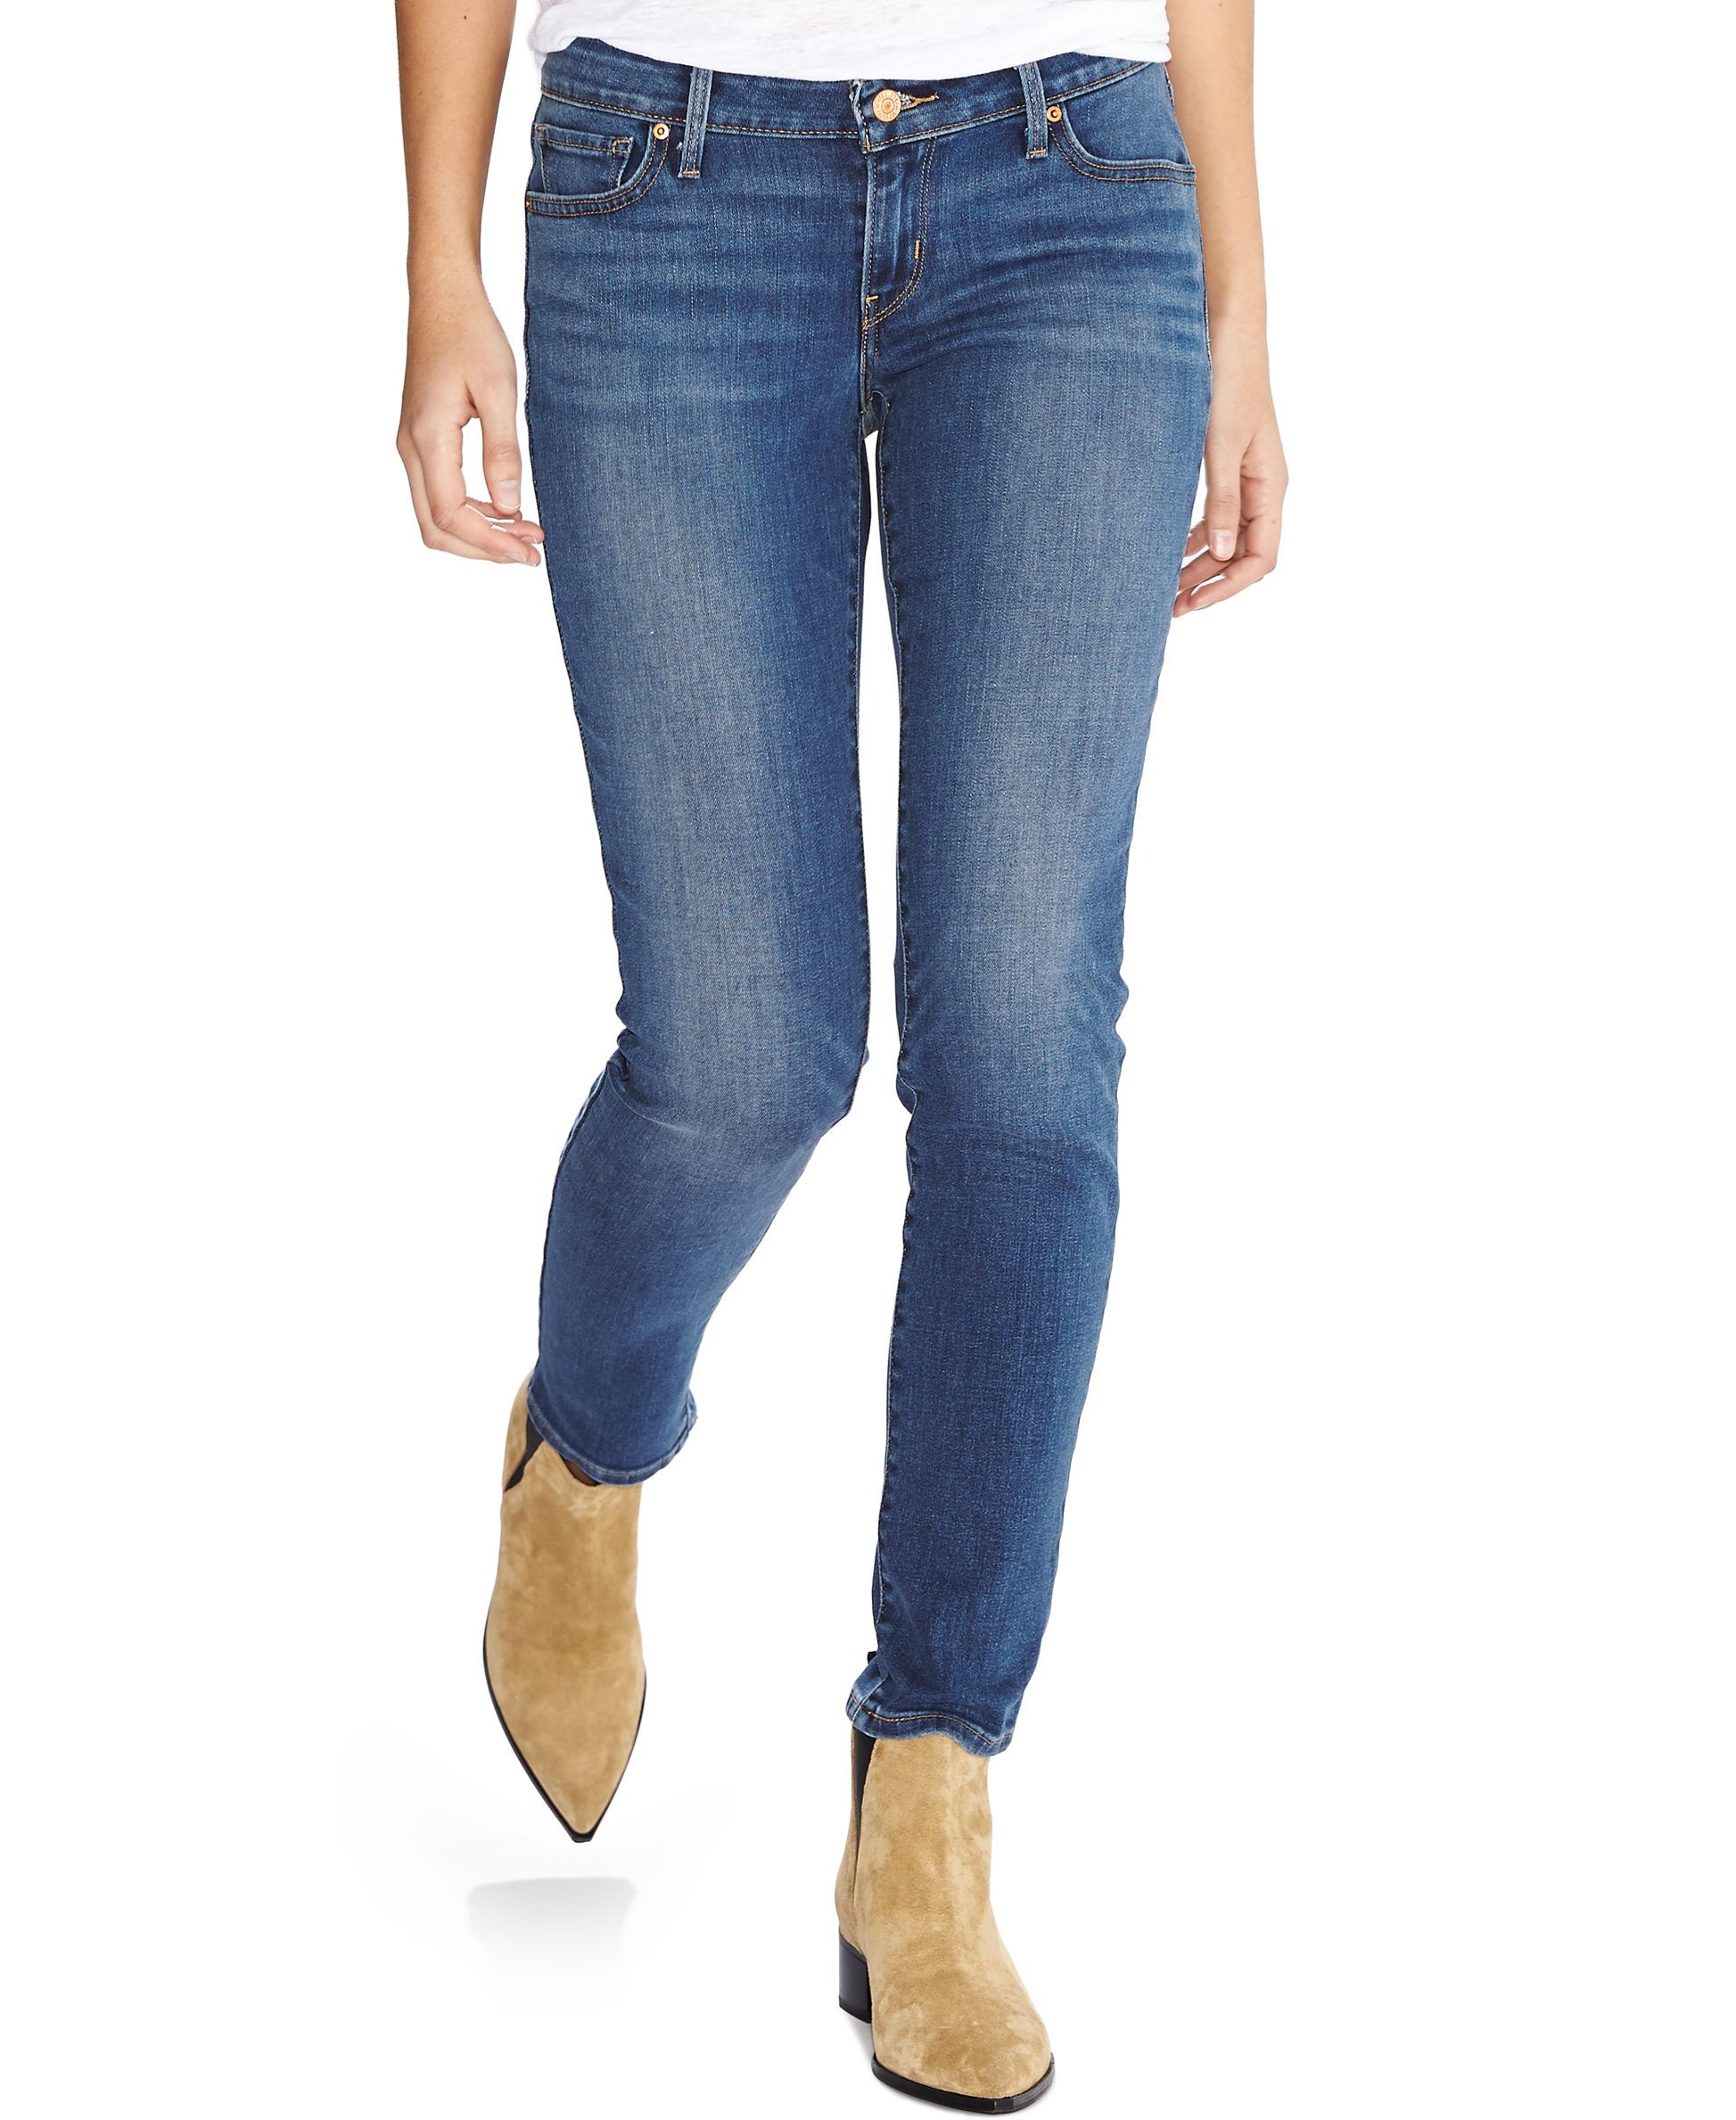 158bcc8e Levi's 811 Curvy Skinny Jeans, Calm Sea Wash | Products